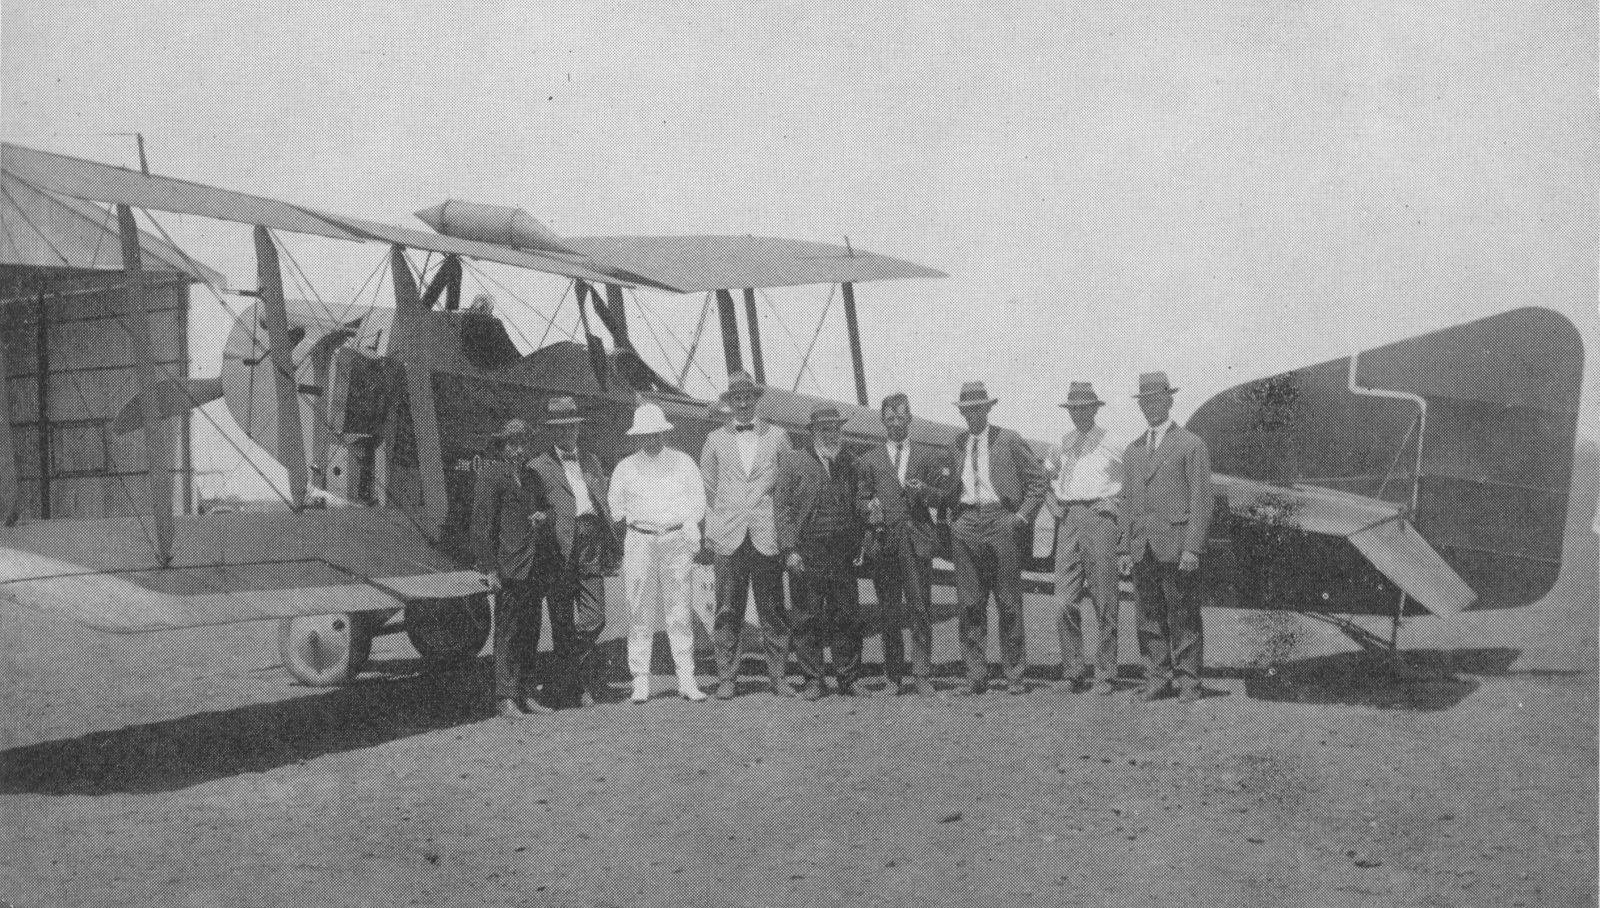 Arrival of the first Qantas Flight in Longreach on 2 November 1922